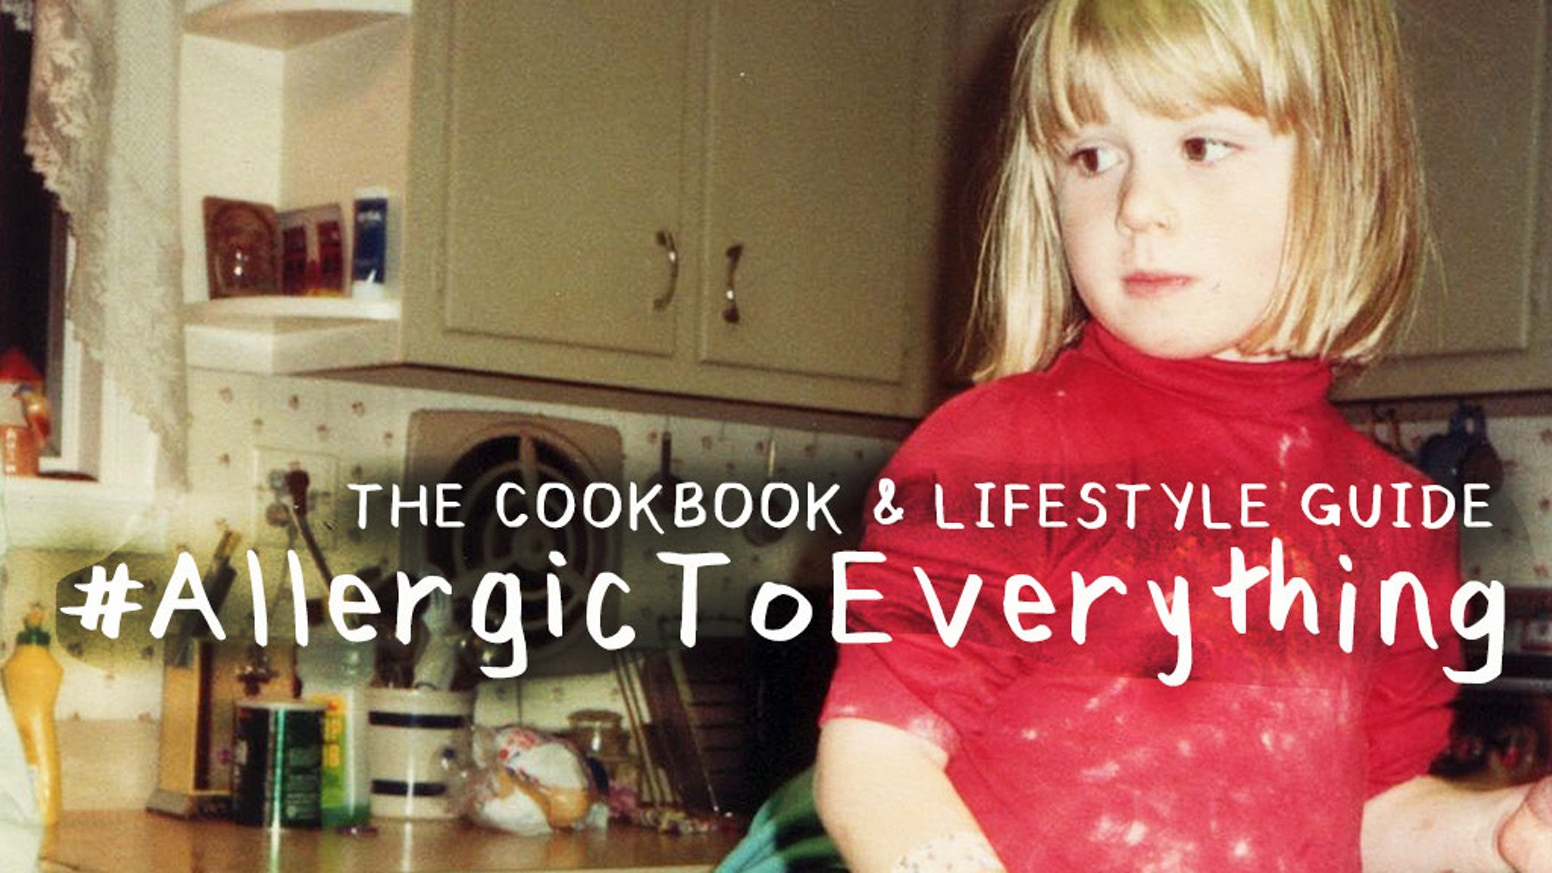 #AllergicToEverything - The Cookbook & Lifestyle Guide